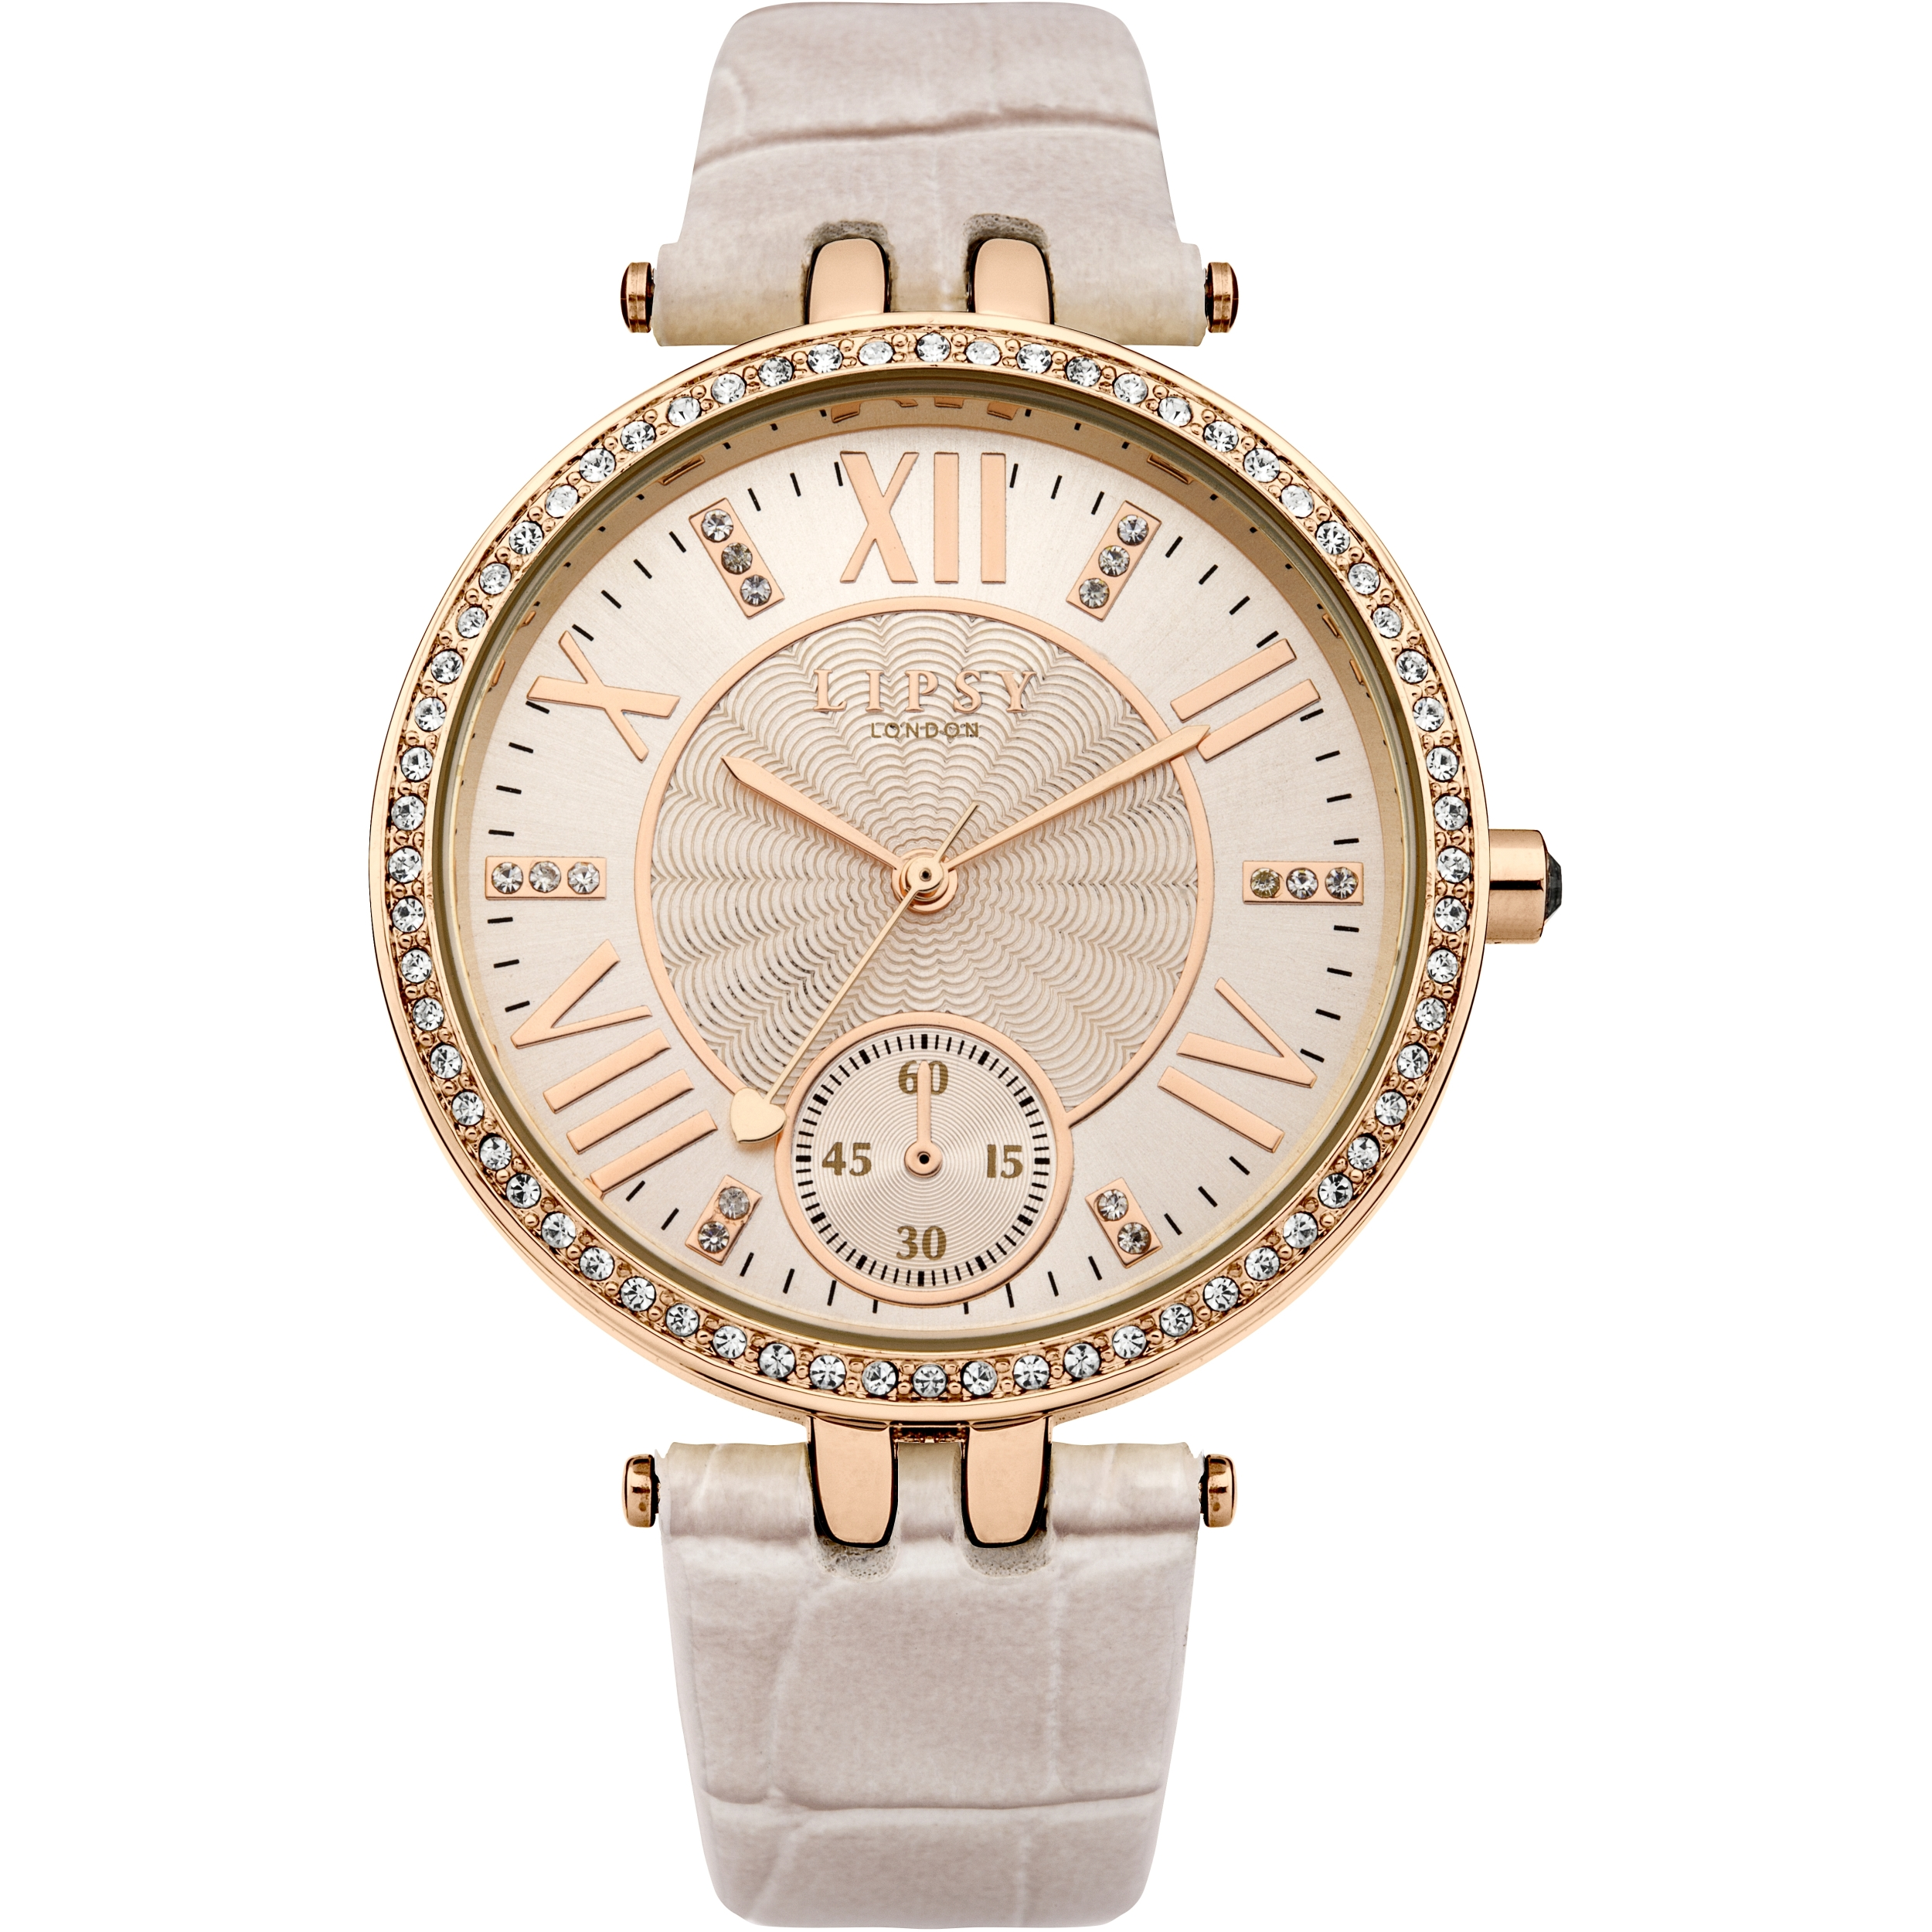 threads blinds arrivals what the blind recently forums page omega did you for buy watches